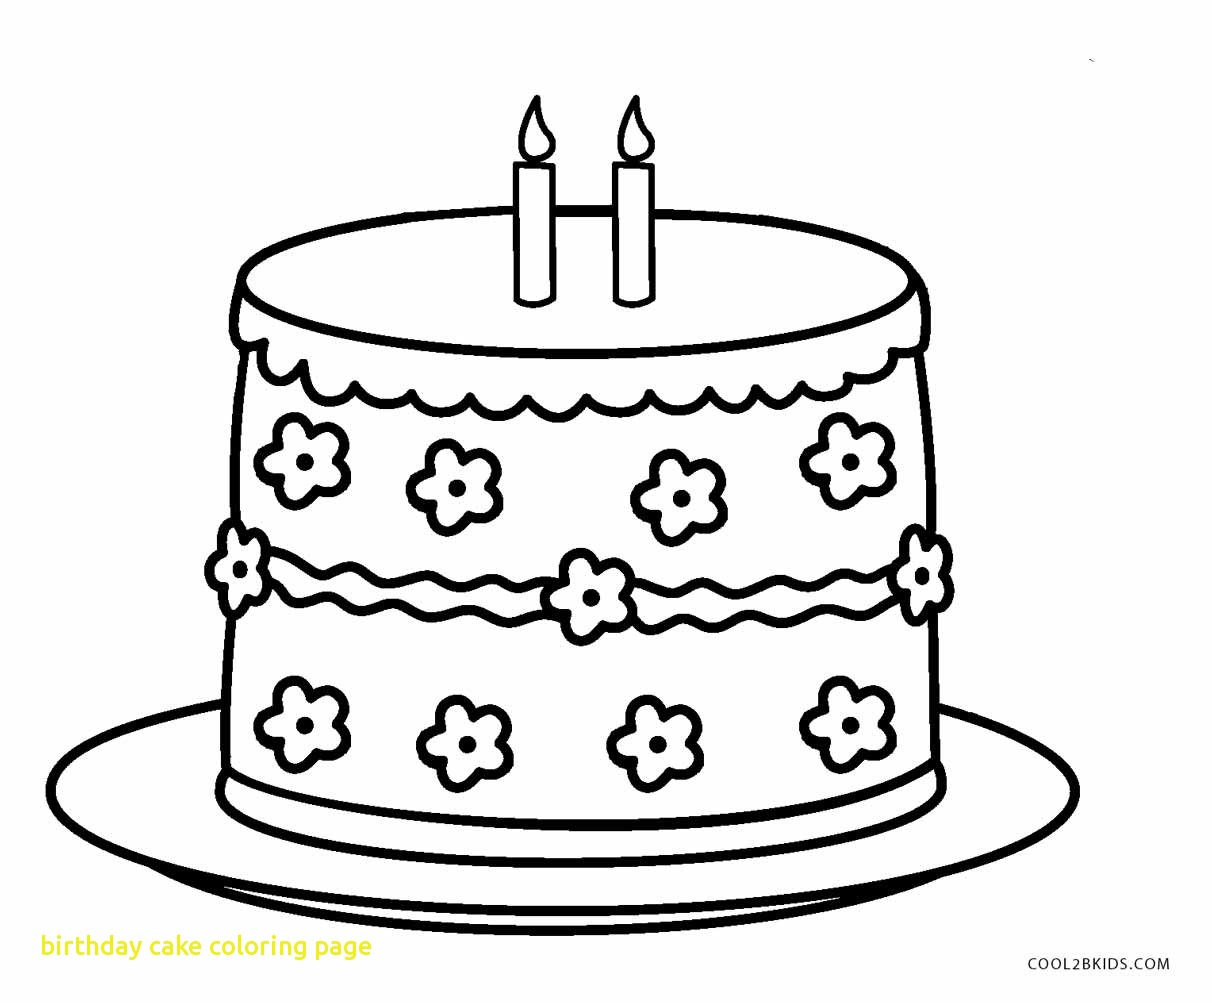 1212x1003 Birthday Cake Coloring Page With Free Printable Birthday Cake